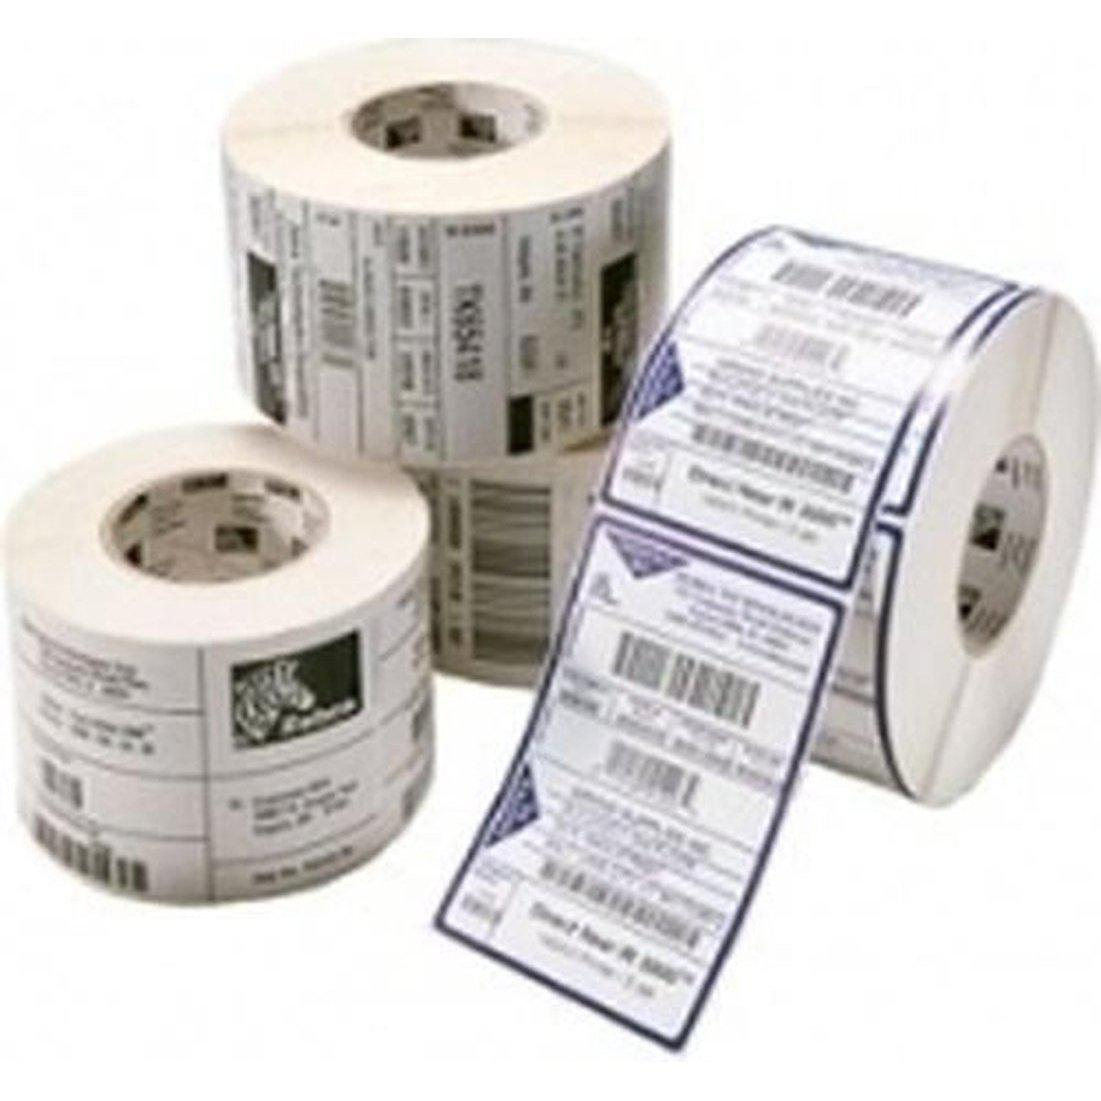 Zebra Z-Ultimate 3000T Thermal Transfer Polyester Label 38.1mm x 19.0mm, Silver | 880368-019 Consumable Zebra